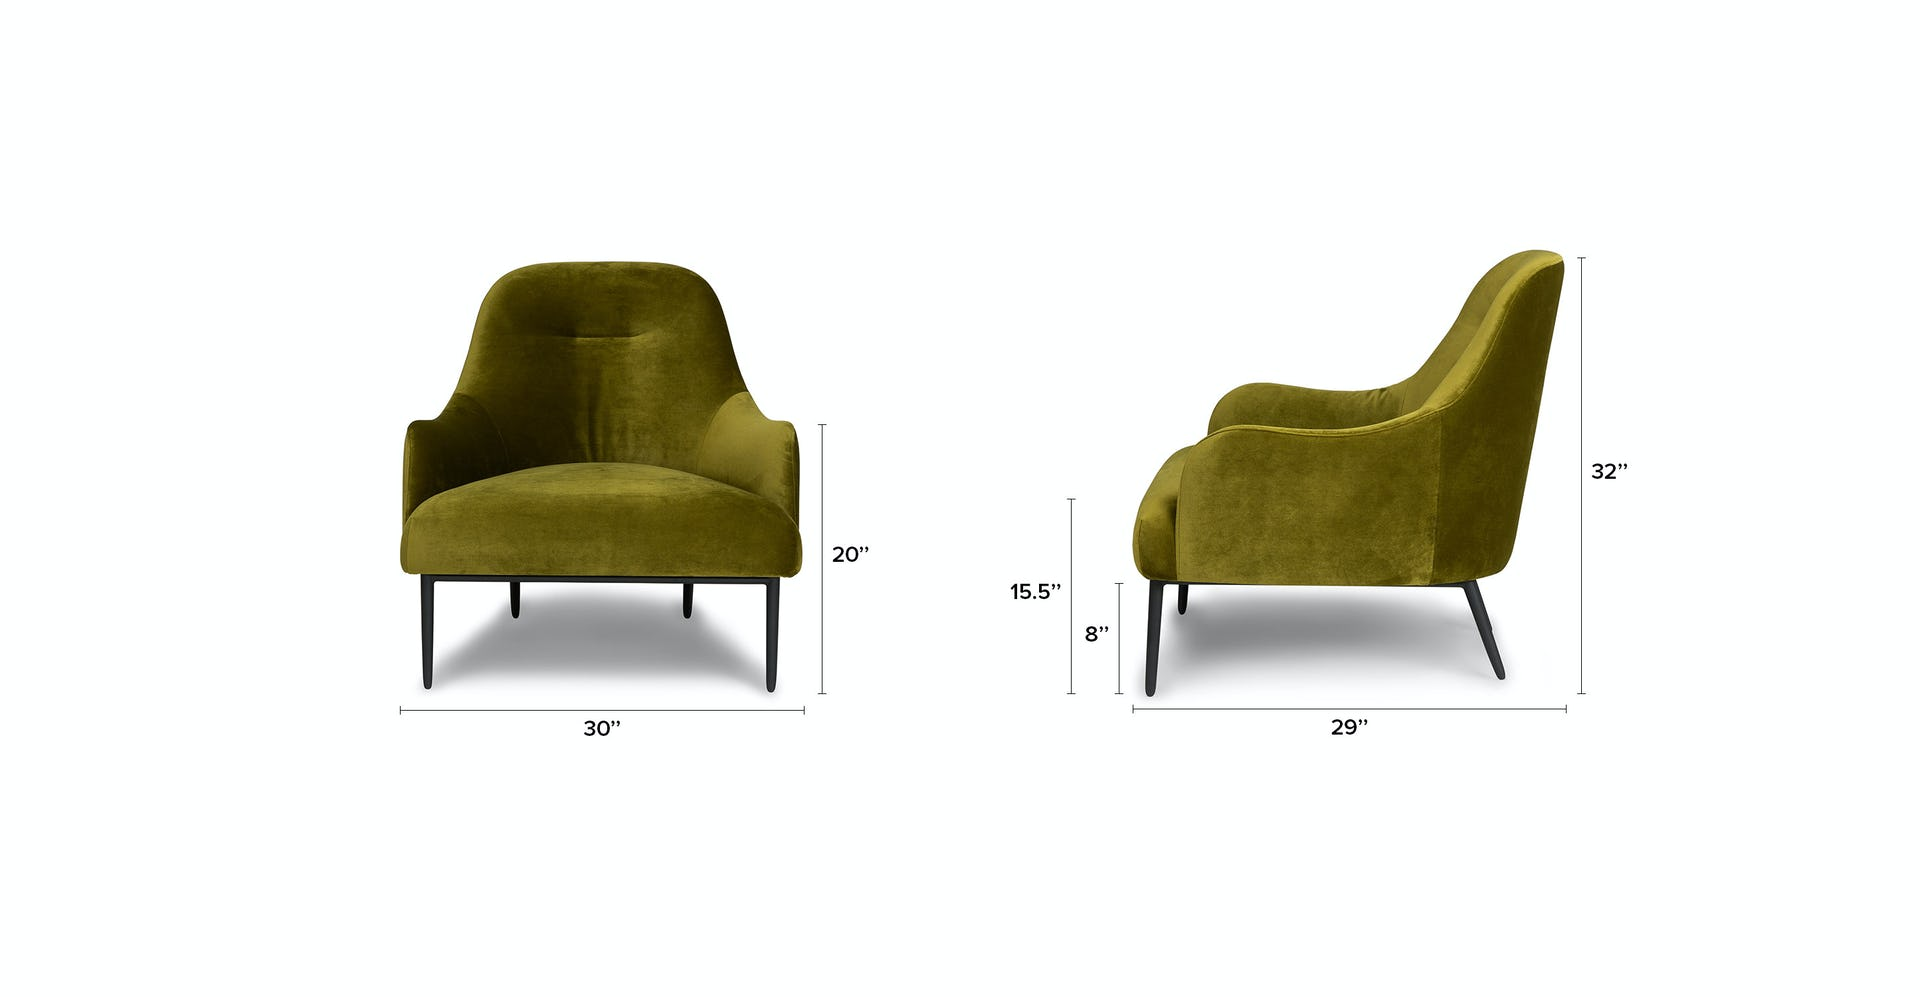 Swell Moss Green Embrace Velvet Lounge Chair Article Caraccident5 Cool Chair Designs And Ideas Caraccident5Info